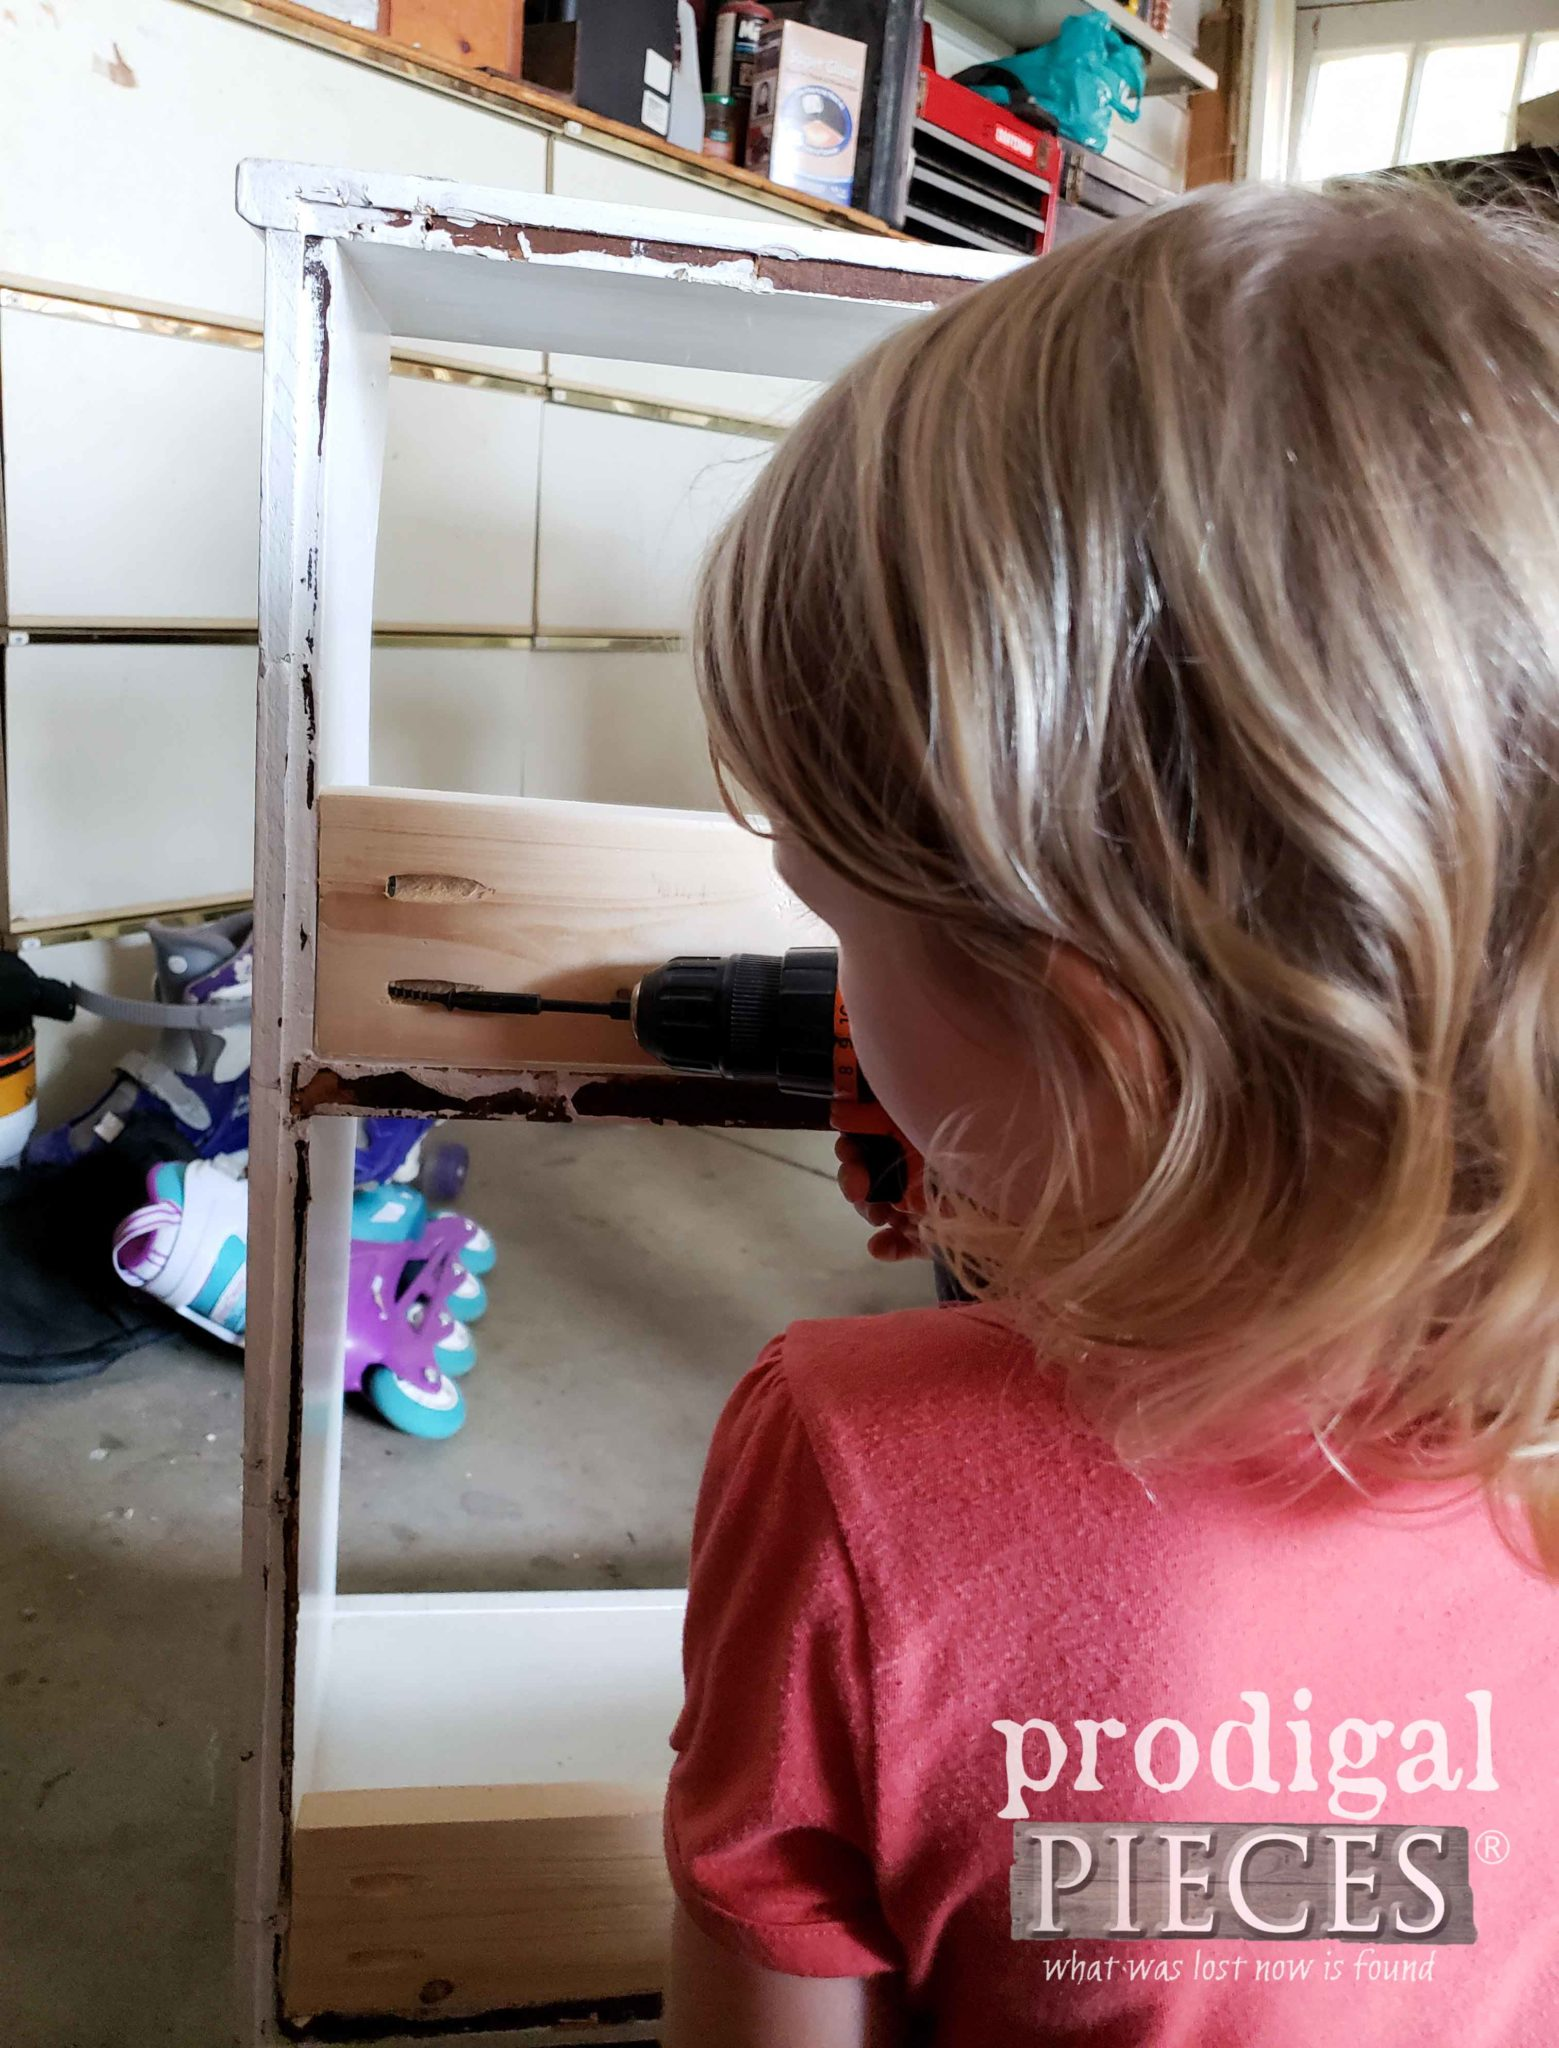 Daughter Helping Attach Bookcase Braces | prodigalpieces.com